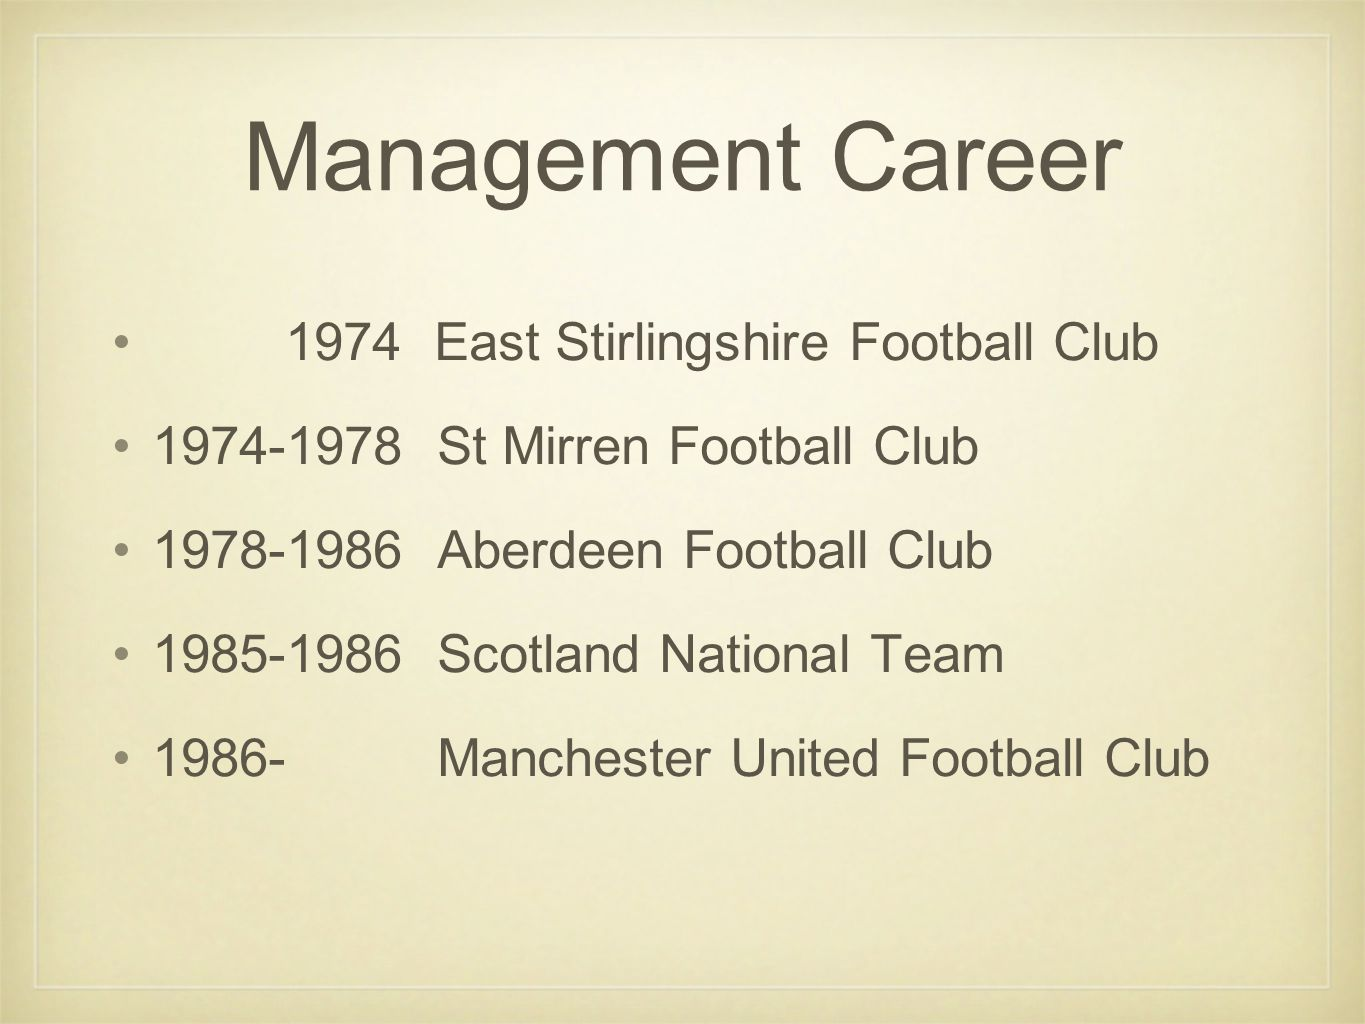 Management Career 1974 East Stirlingshire Football Club 1974-1978 St Mirren Football Club 1978-1986 Aberdeen Football Club 1985-1986 Scotland National Team 1986- Manchester United Football Club